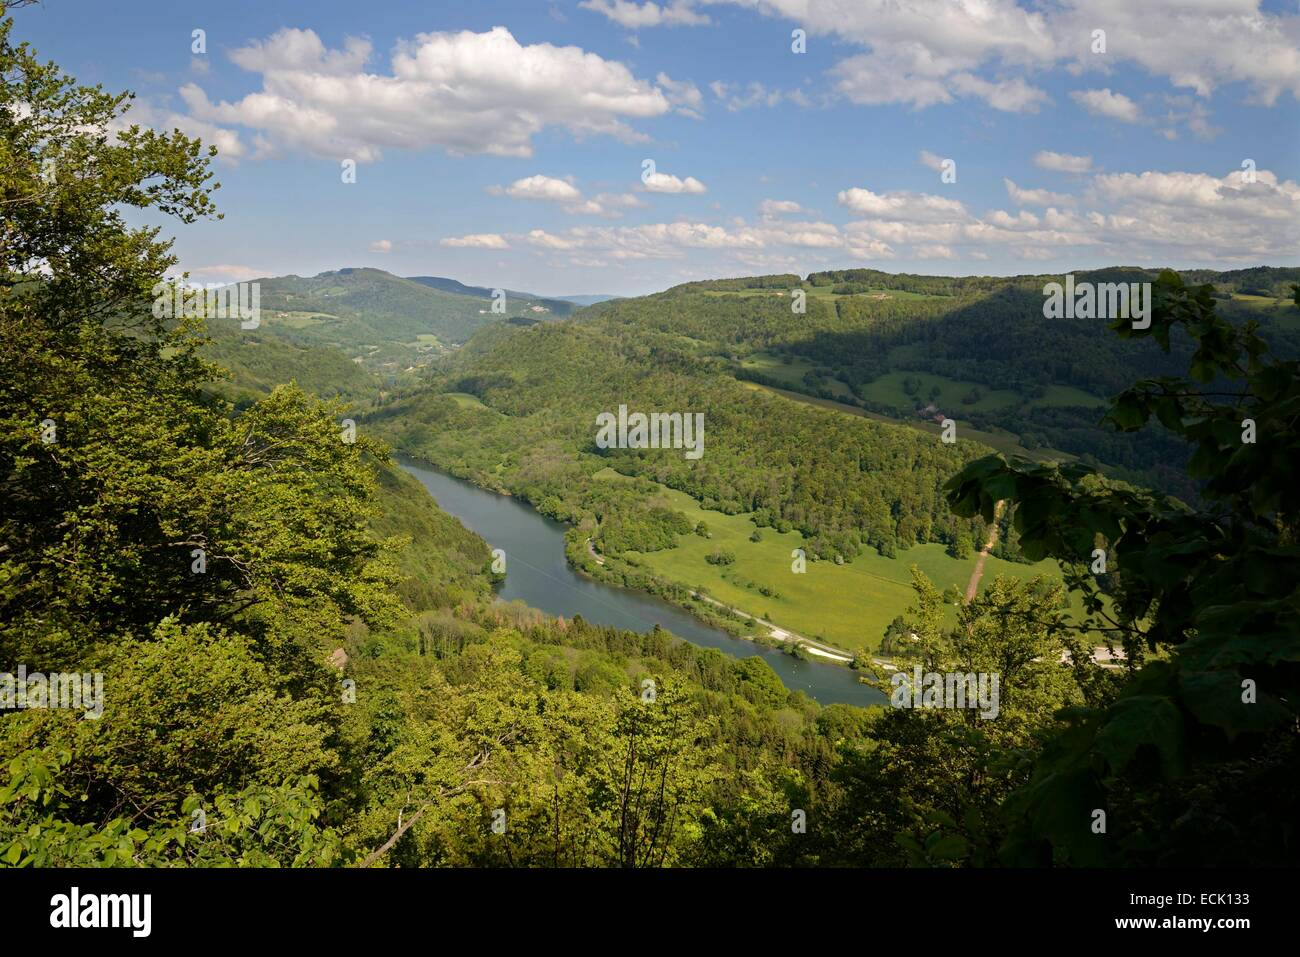 France, Doubs, Vaufrey, Doubs valley in spring enclave in the foothills of the High Doubs - Stock Image